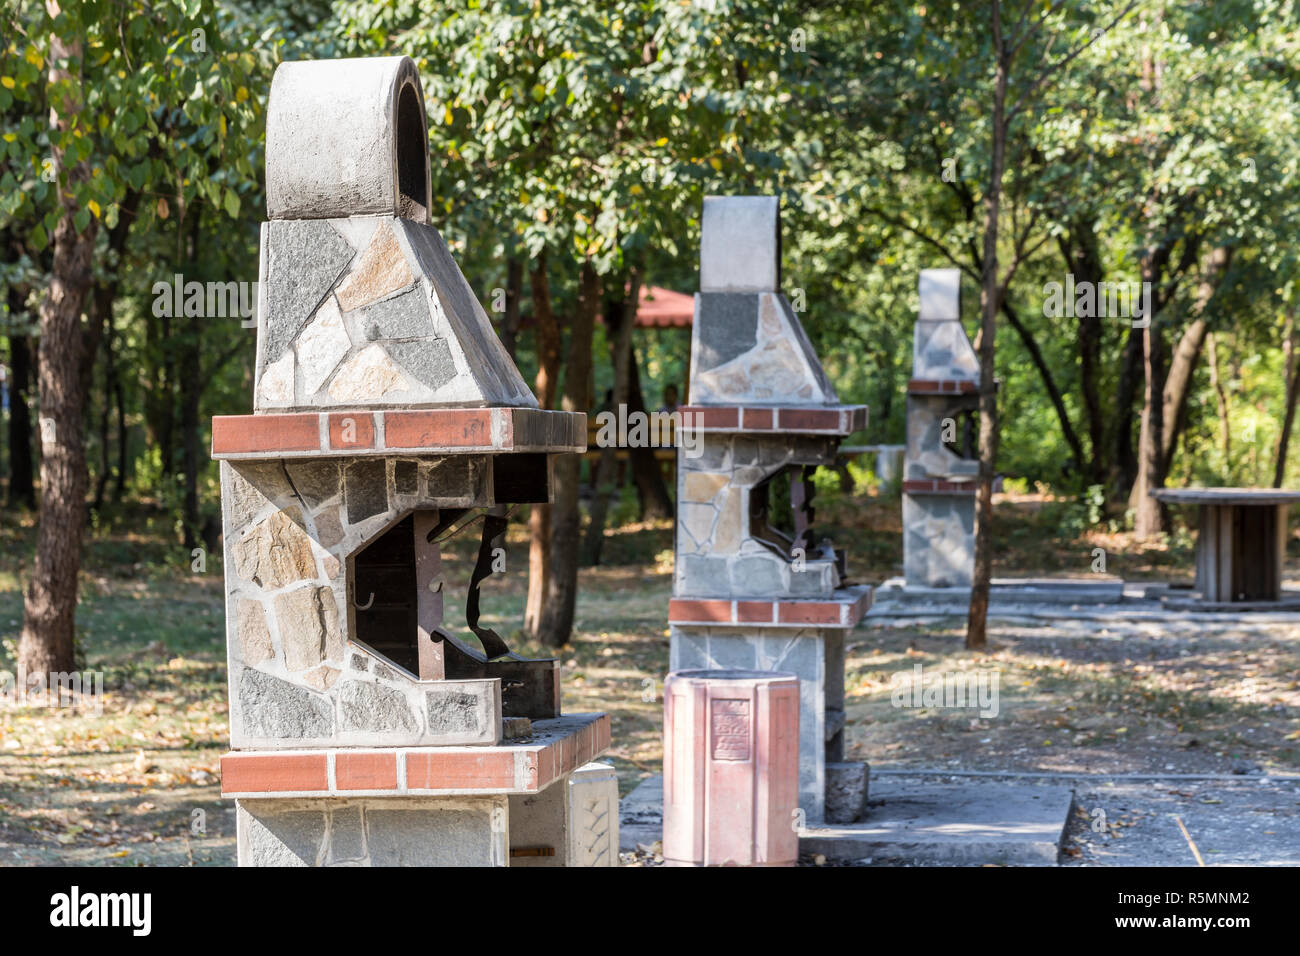 Three barbeque fireplaces located in a park for public usage. - Stock Image